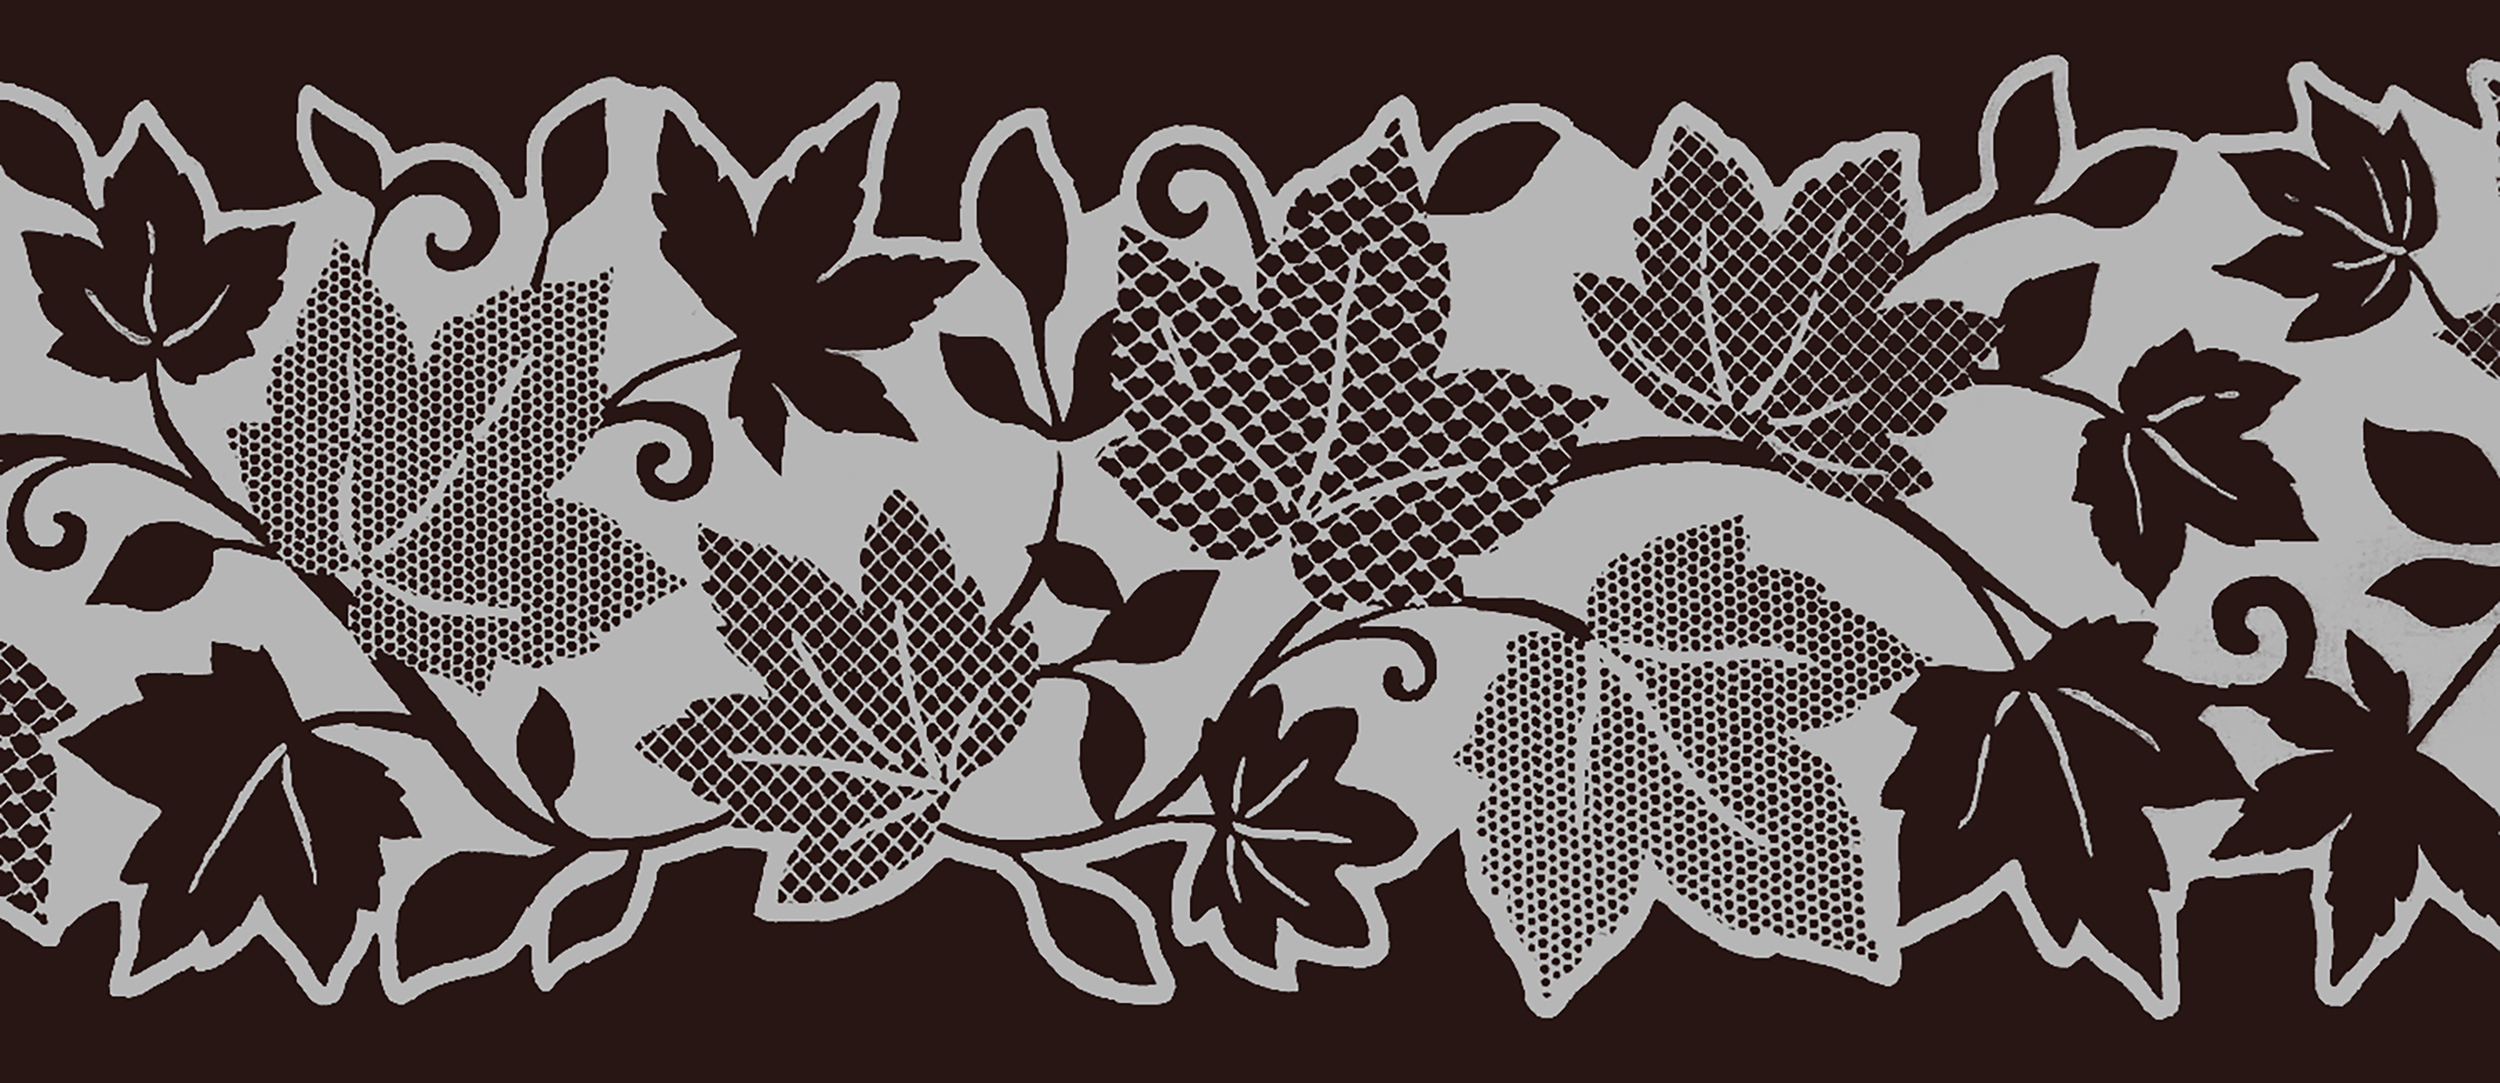 10m X 10cm Dundee Deco MGAZB6002 Peel and Stick Floral White Leaves Vines Self Adhesive Mirror Window Sticker Wallpaper Border Roll 33 ft X 4 in